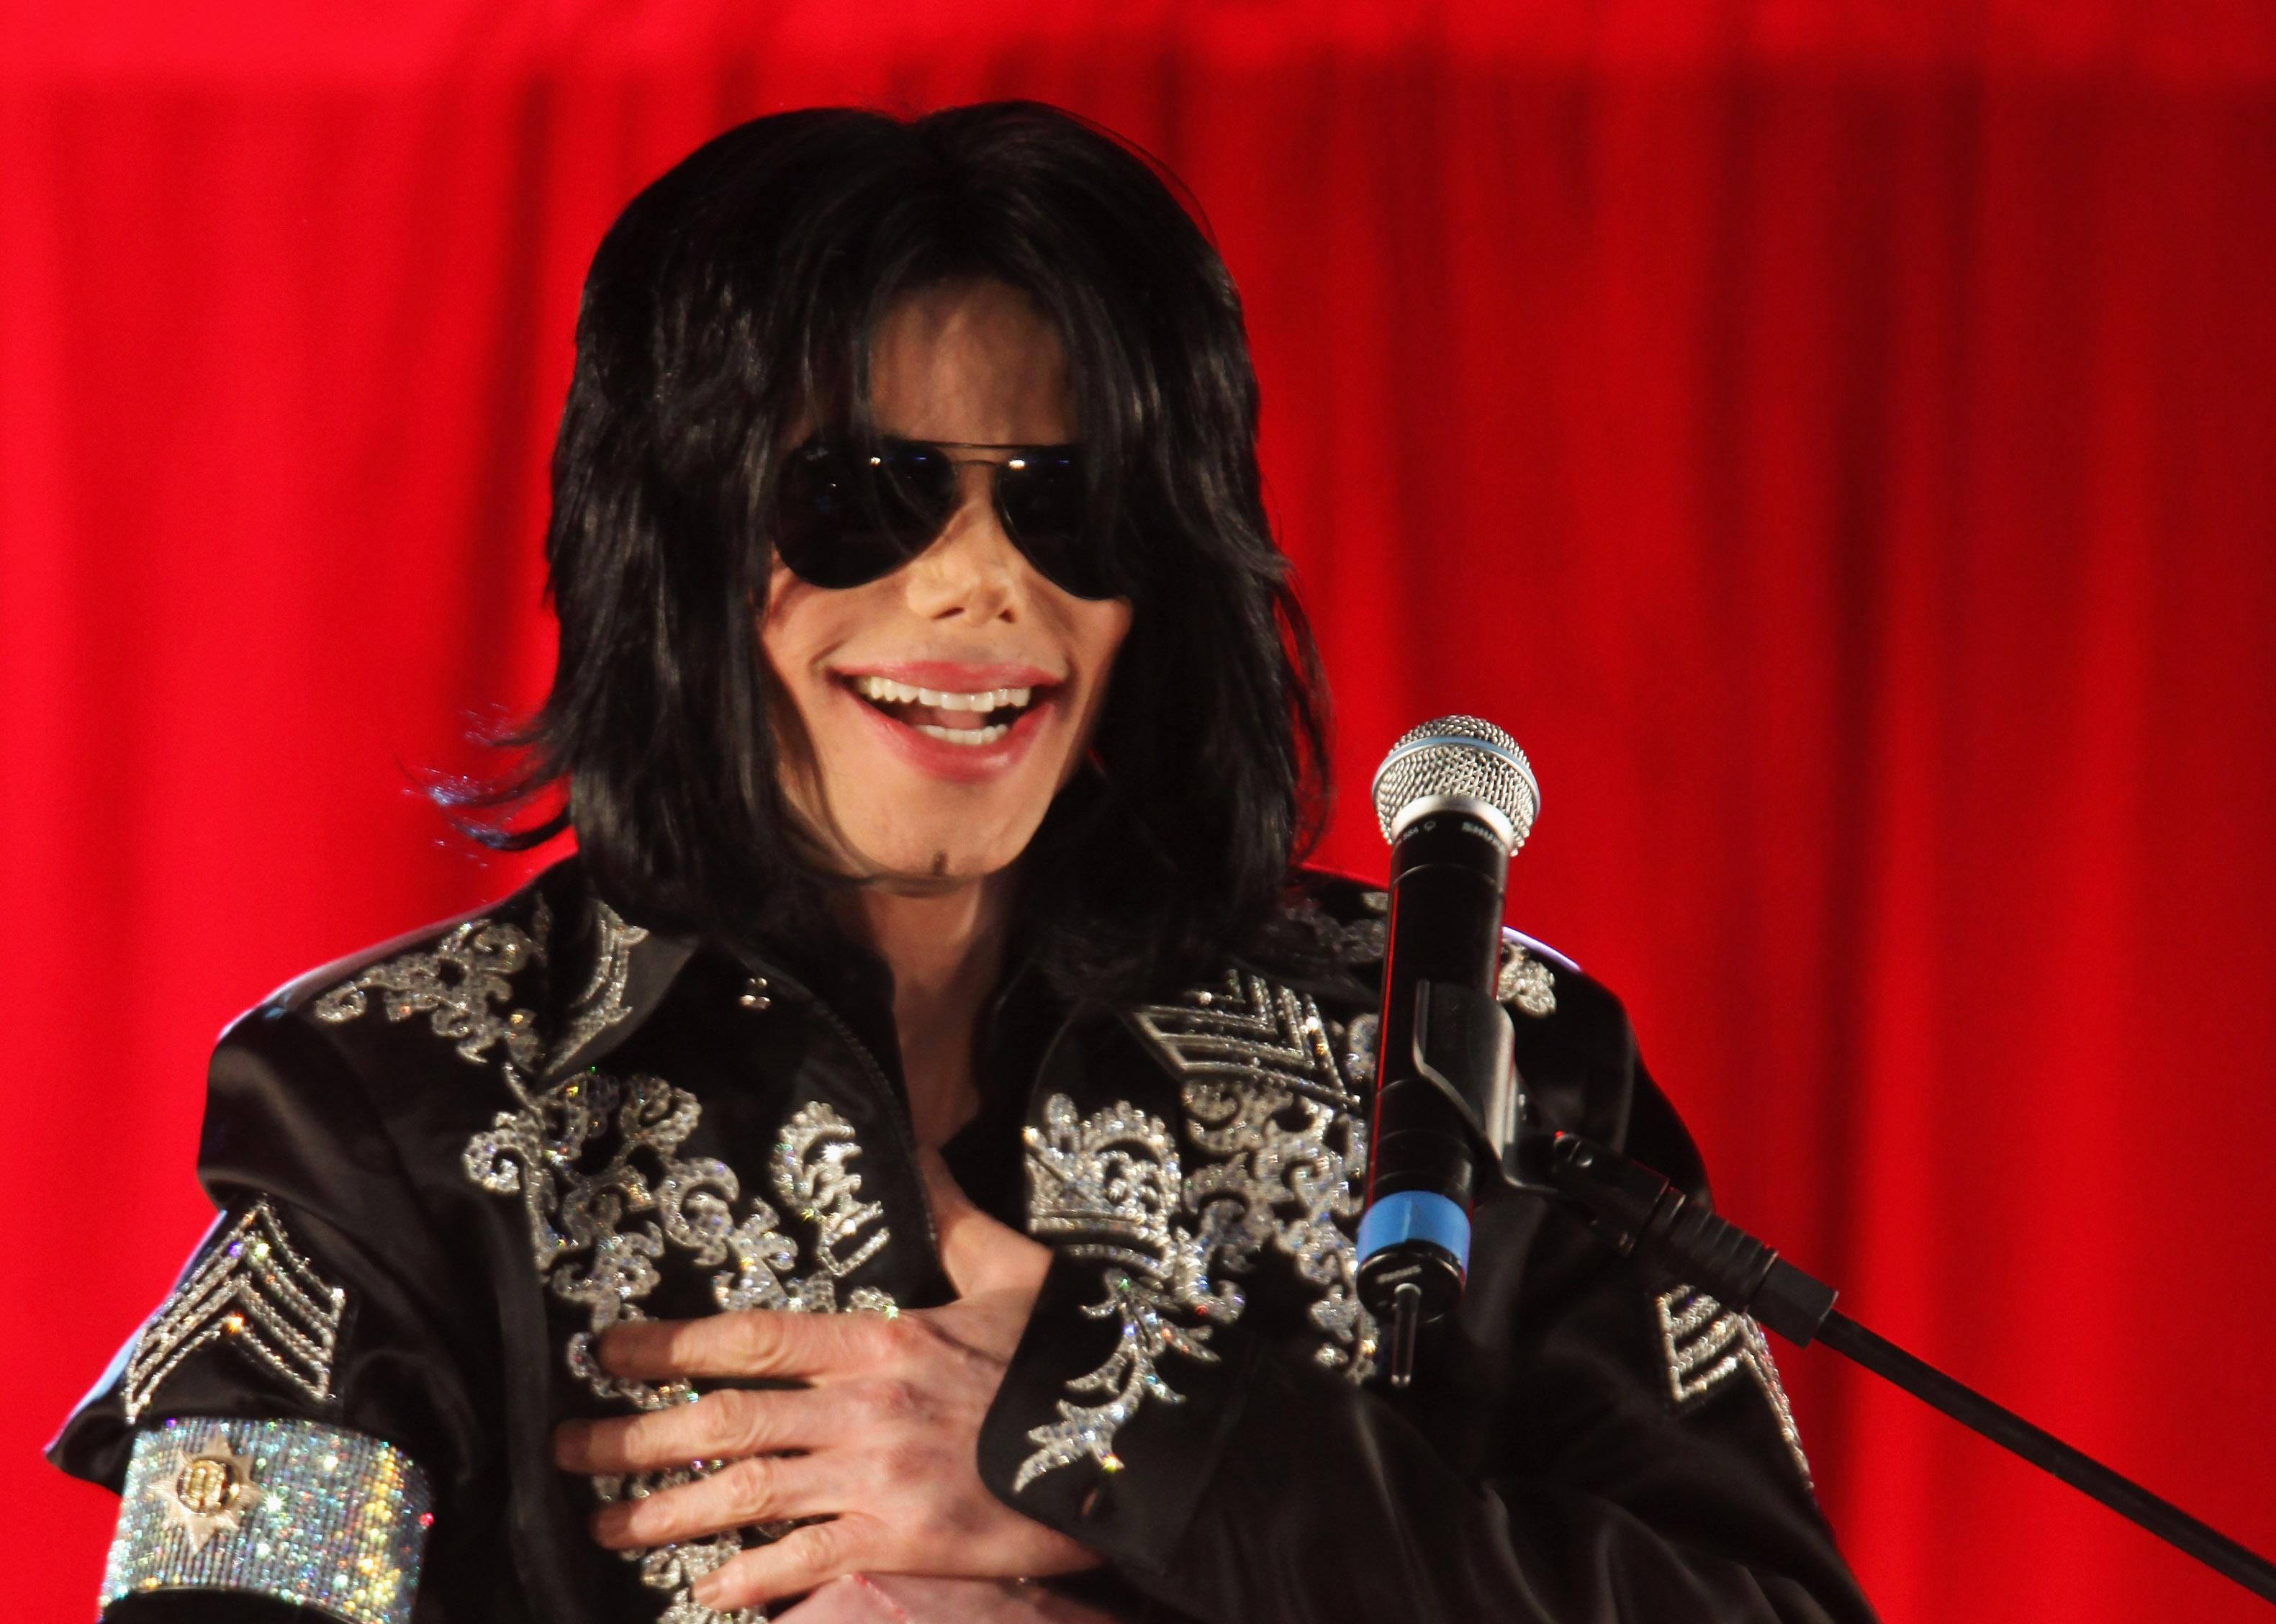 GettyImages 85259926 Michael Jackson Victim Makes Shocking Claims About Singer